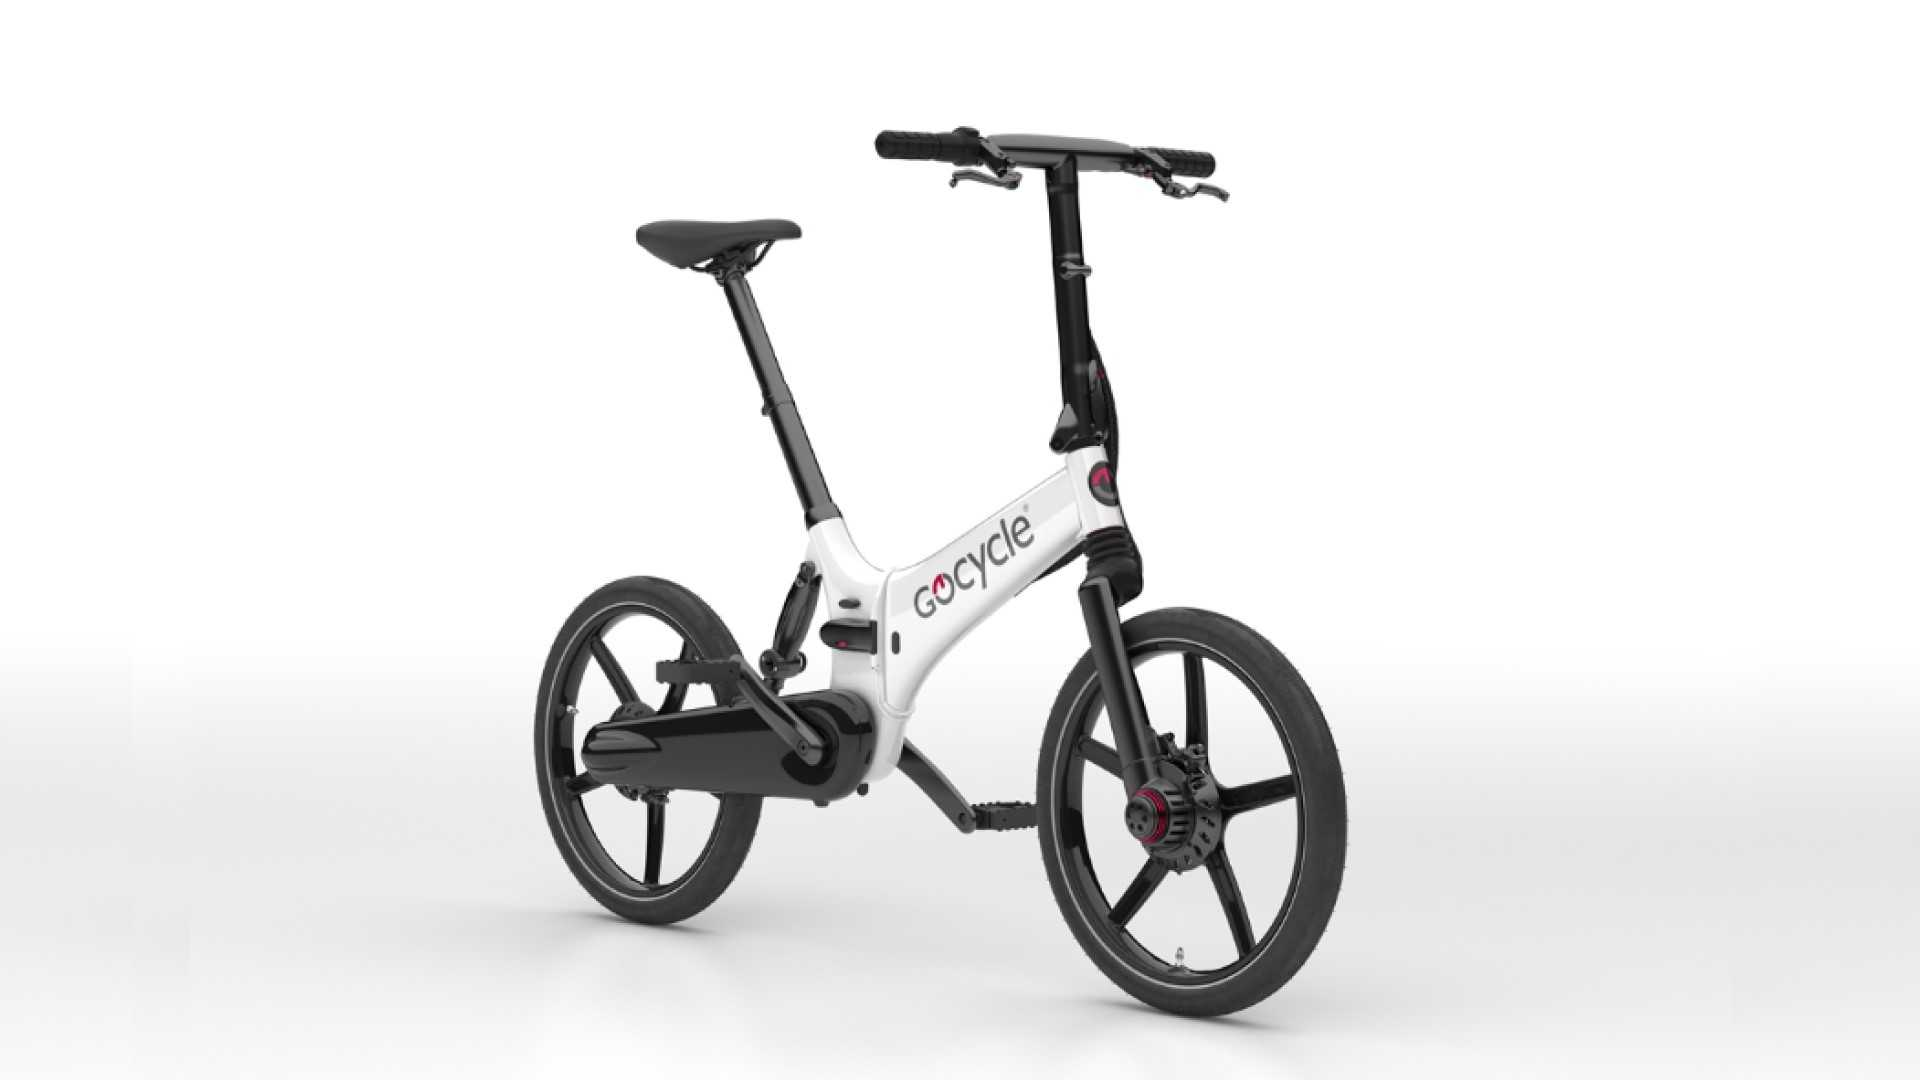 The Gocycle GX Brings F1 Tech To Electric Bicycles